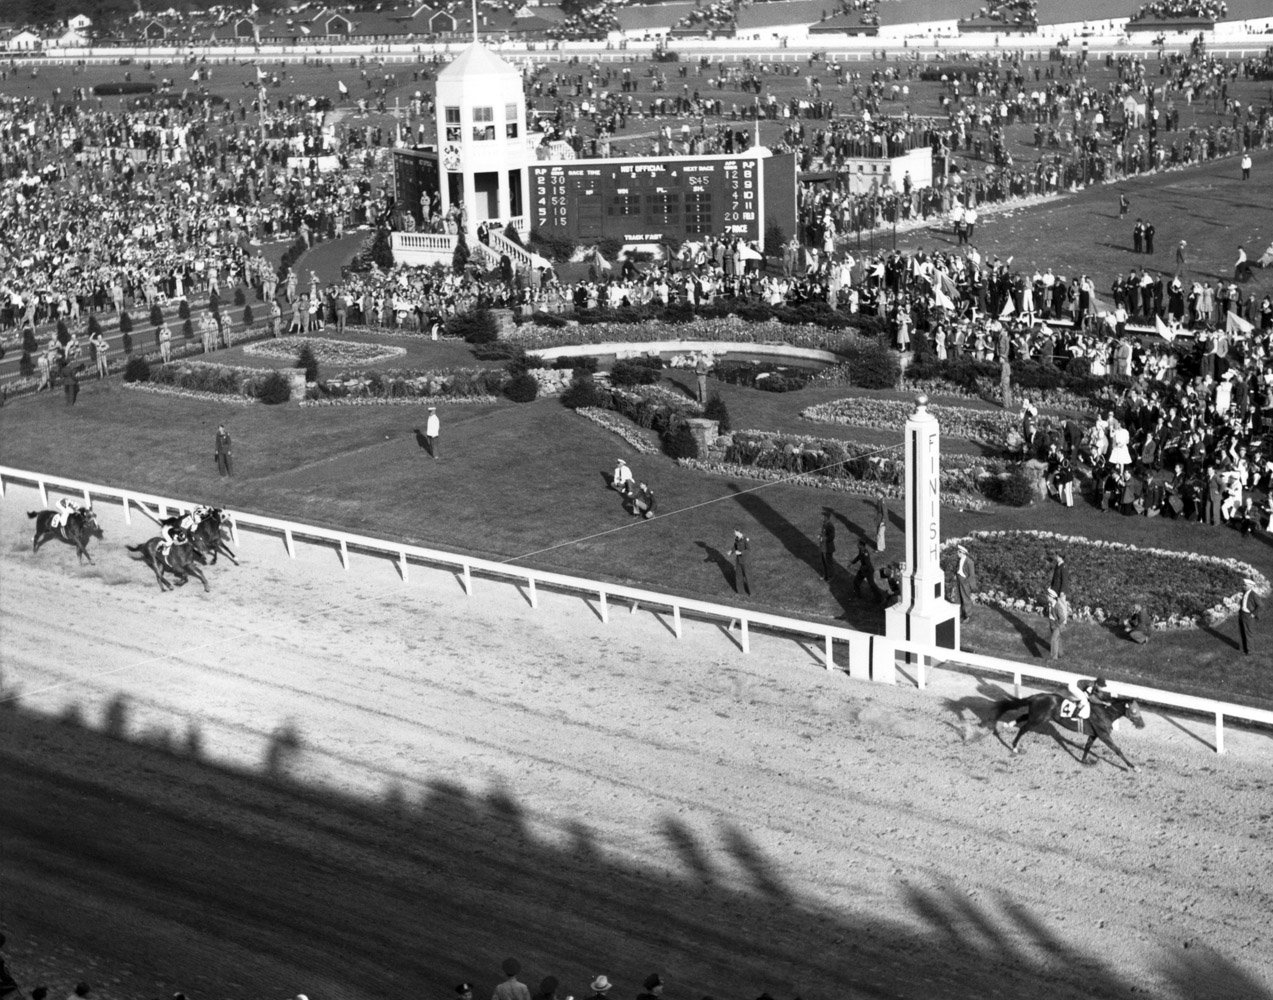 Aerial view of the finish in the 1941 Kentucky Derby, won by Whirlaway with Eddie Arcaro up (Churchill Downs Inc./Kinetic Corp. /Museum Collection)